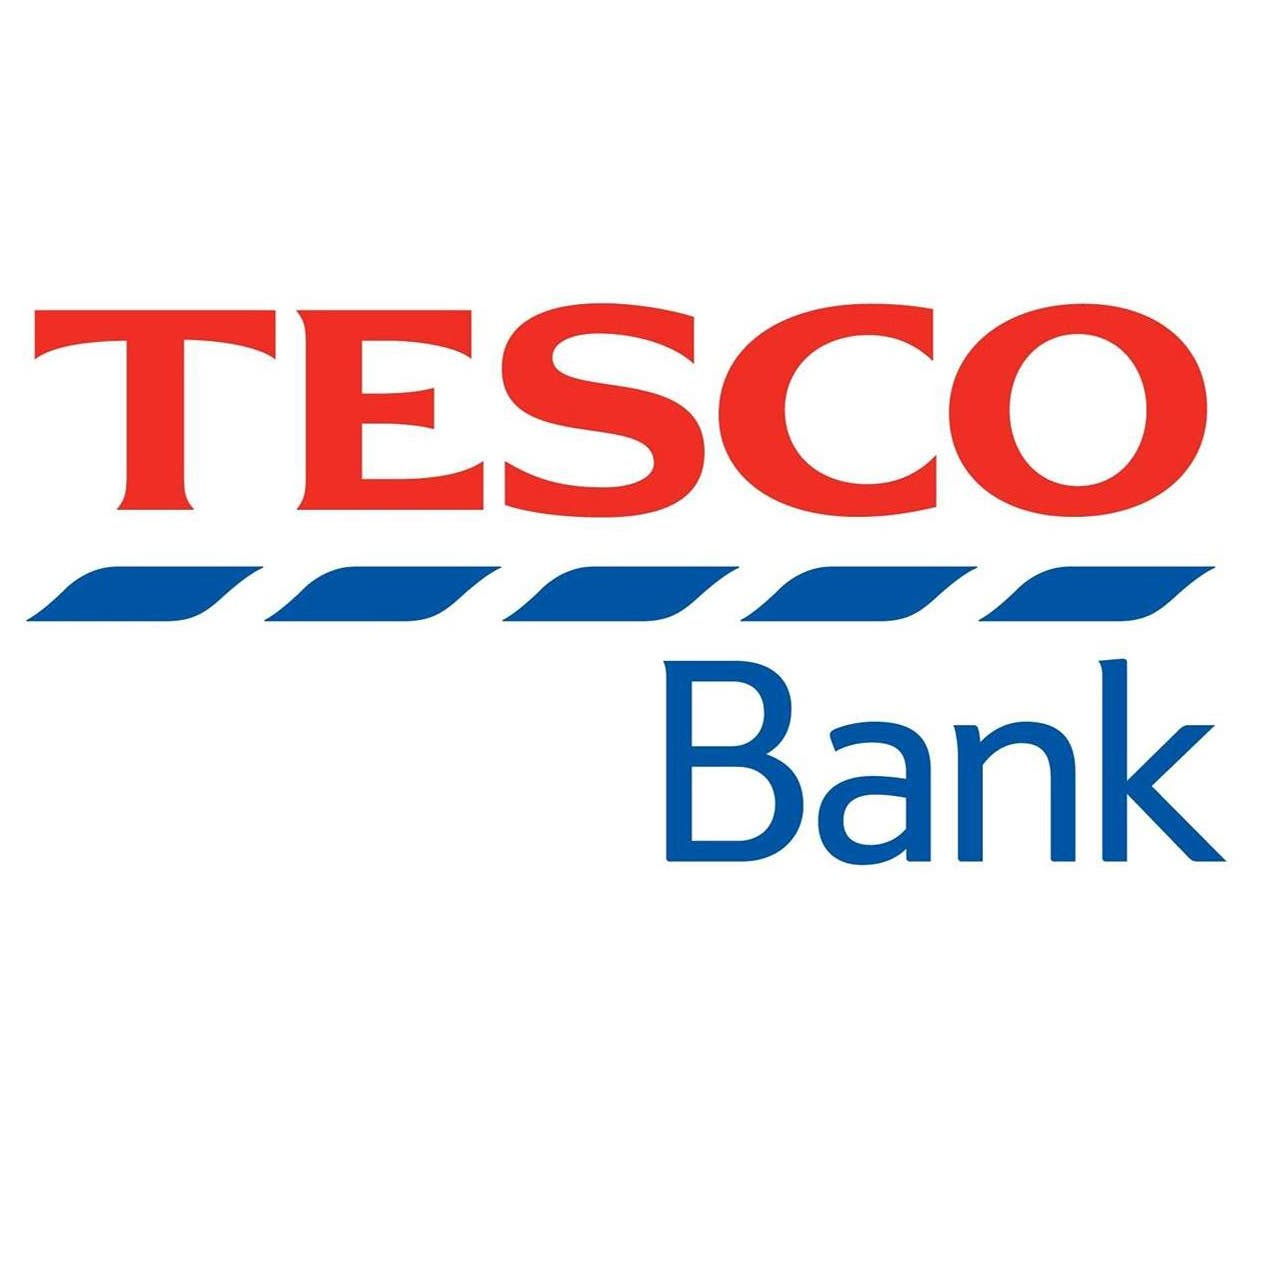 Tesco bank news cards accounts mortgages bankrate uk tesco was founded by grocer jack cohen a simple market stallholder who began selling tesco tea in 1924 using the initials tes from the tea supplier reheart Gallery